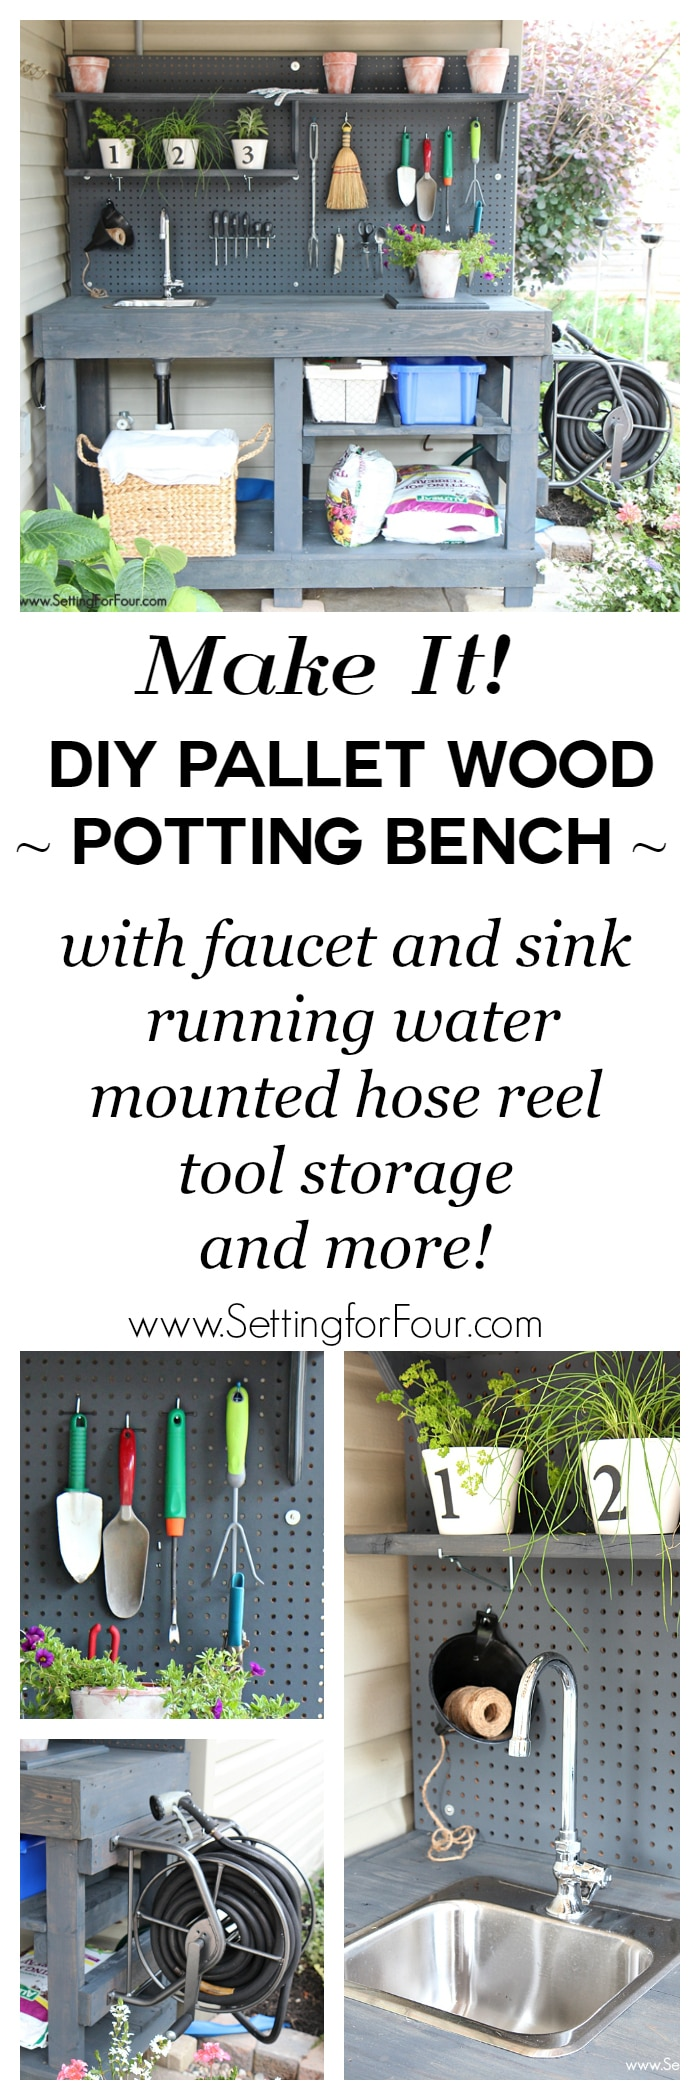 DIY Pallet Wood Potting Bench with storage, faucet, sink and hose!